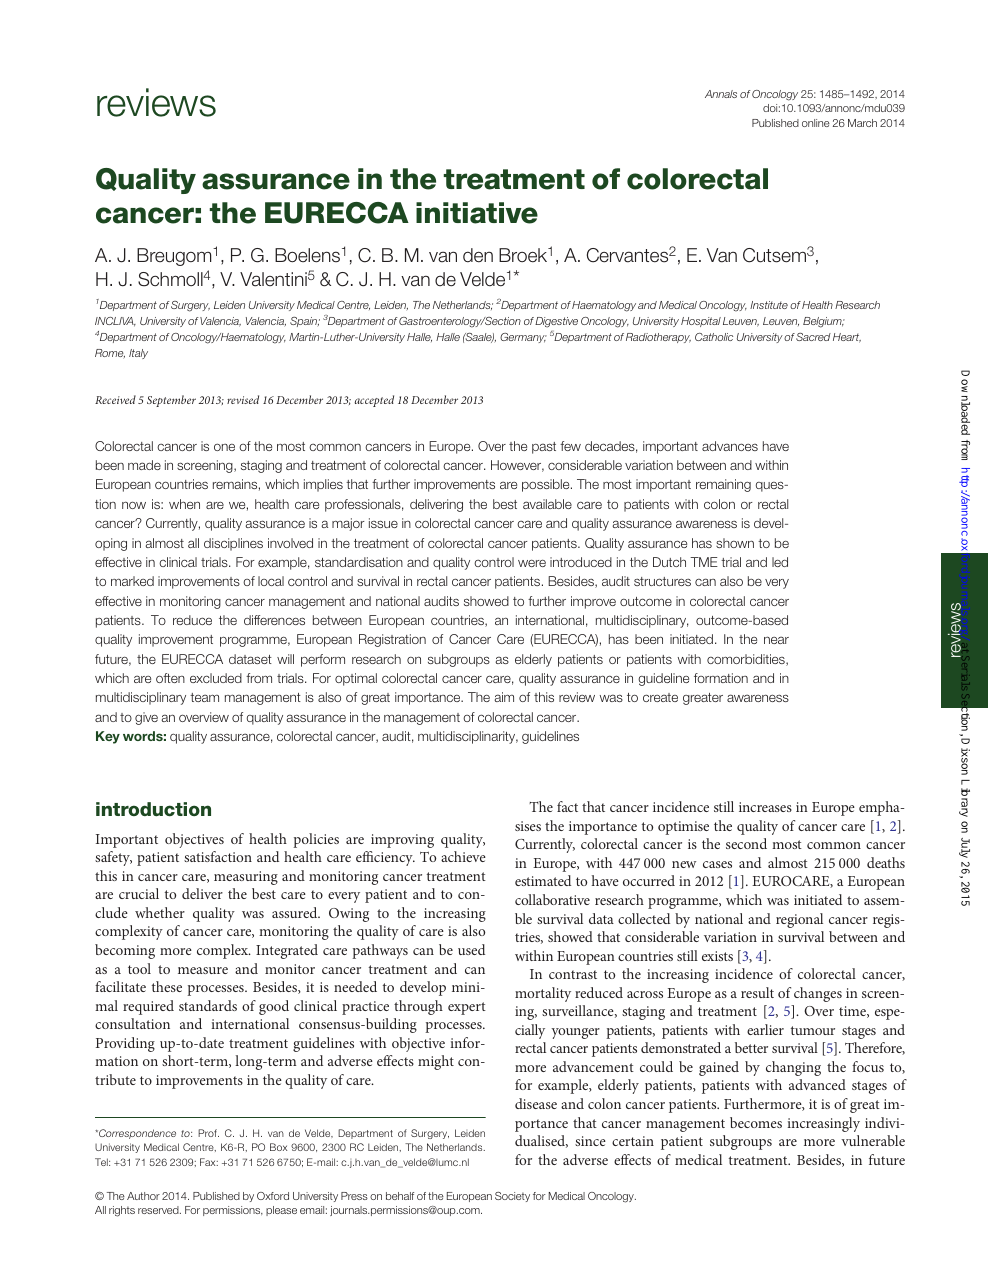 Quality Assurance In The Treatment Of Colorectal Cancer The Eurecca Initiative Topic Of Research Paper In Clinical Medicine Download Scholarly Article Pdf And Read For Free On Cyberleninka Open Science Hub